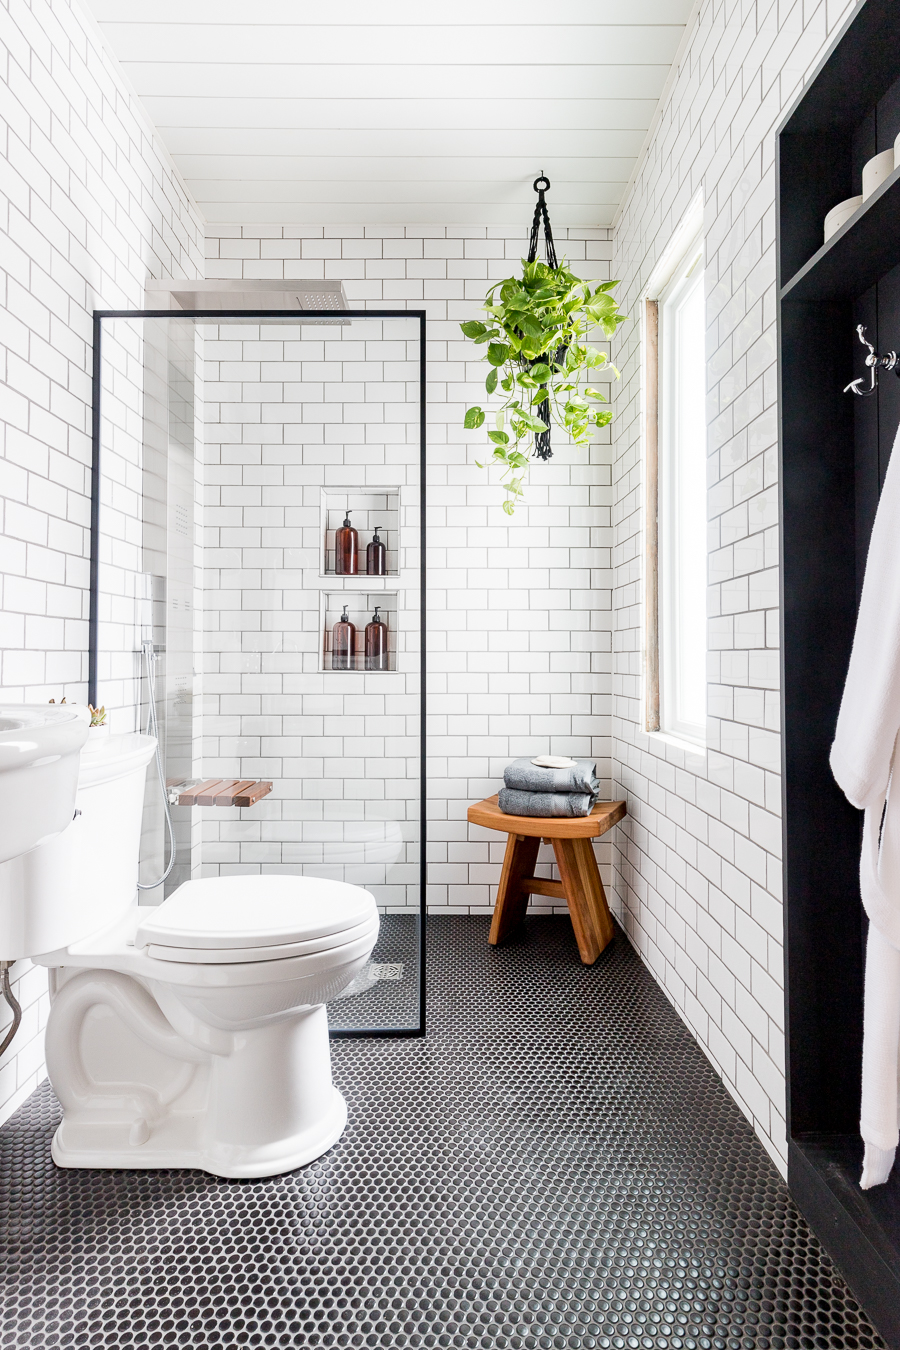 ICYMI: Small Shower Ideas Can Be Luxurious | Hunker